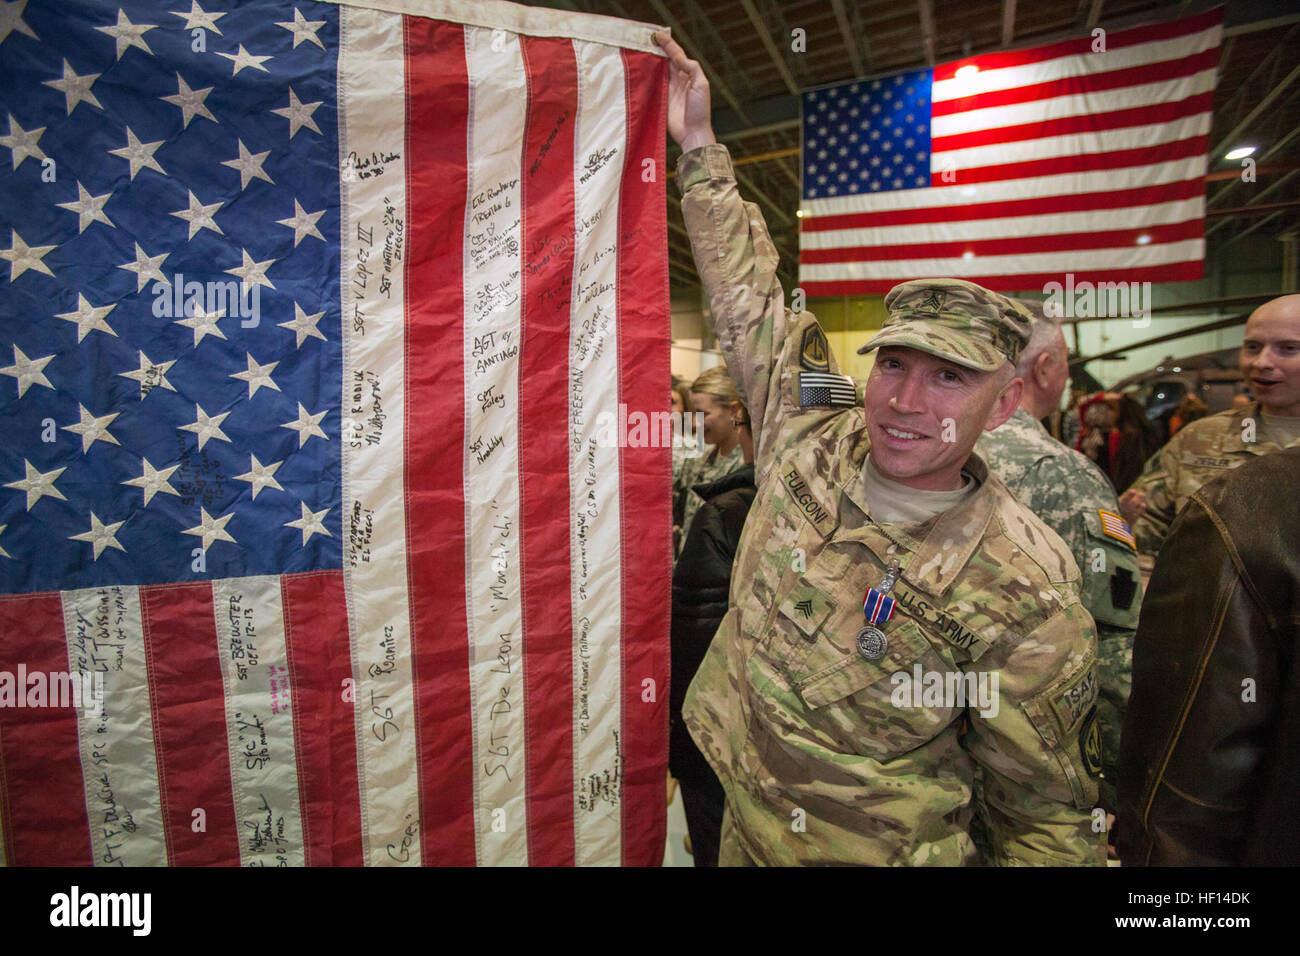 Sgt. Raymond J. Fulgoni holds up his flag, which is signed by the Soldiers of the 117th Combat Sustainment Support - Stock Image